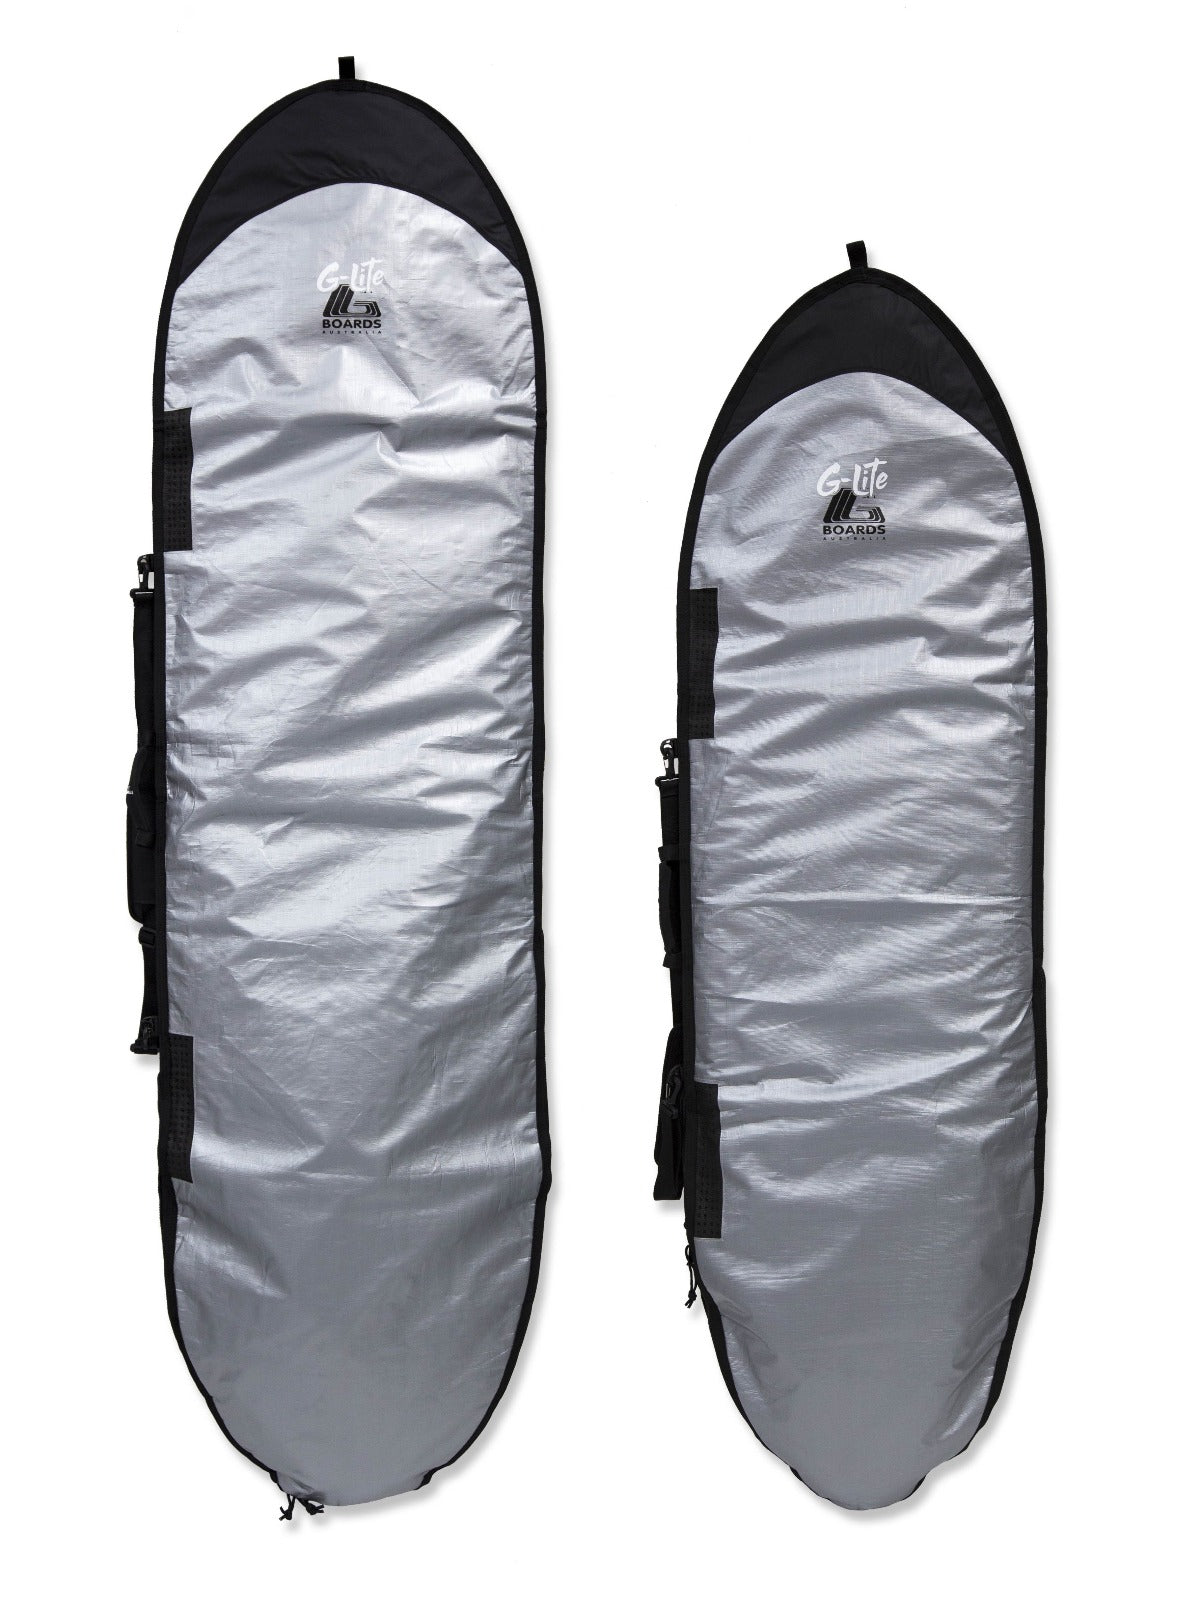 "G-Lite 7'0"" to 8'0"" Board Bags"